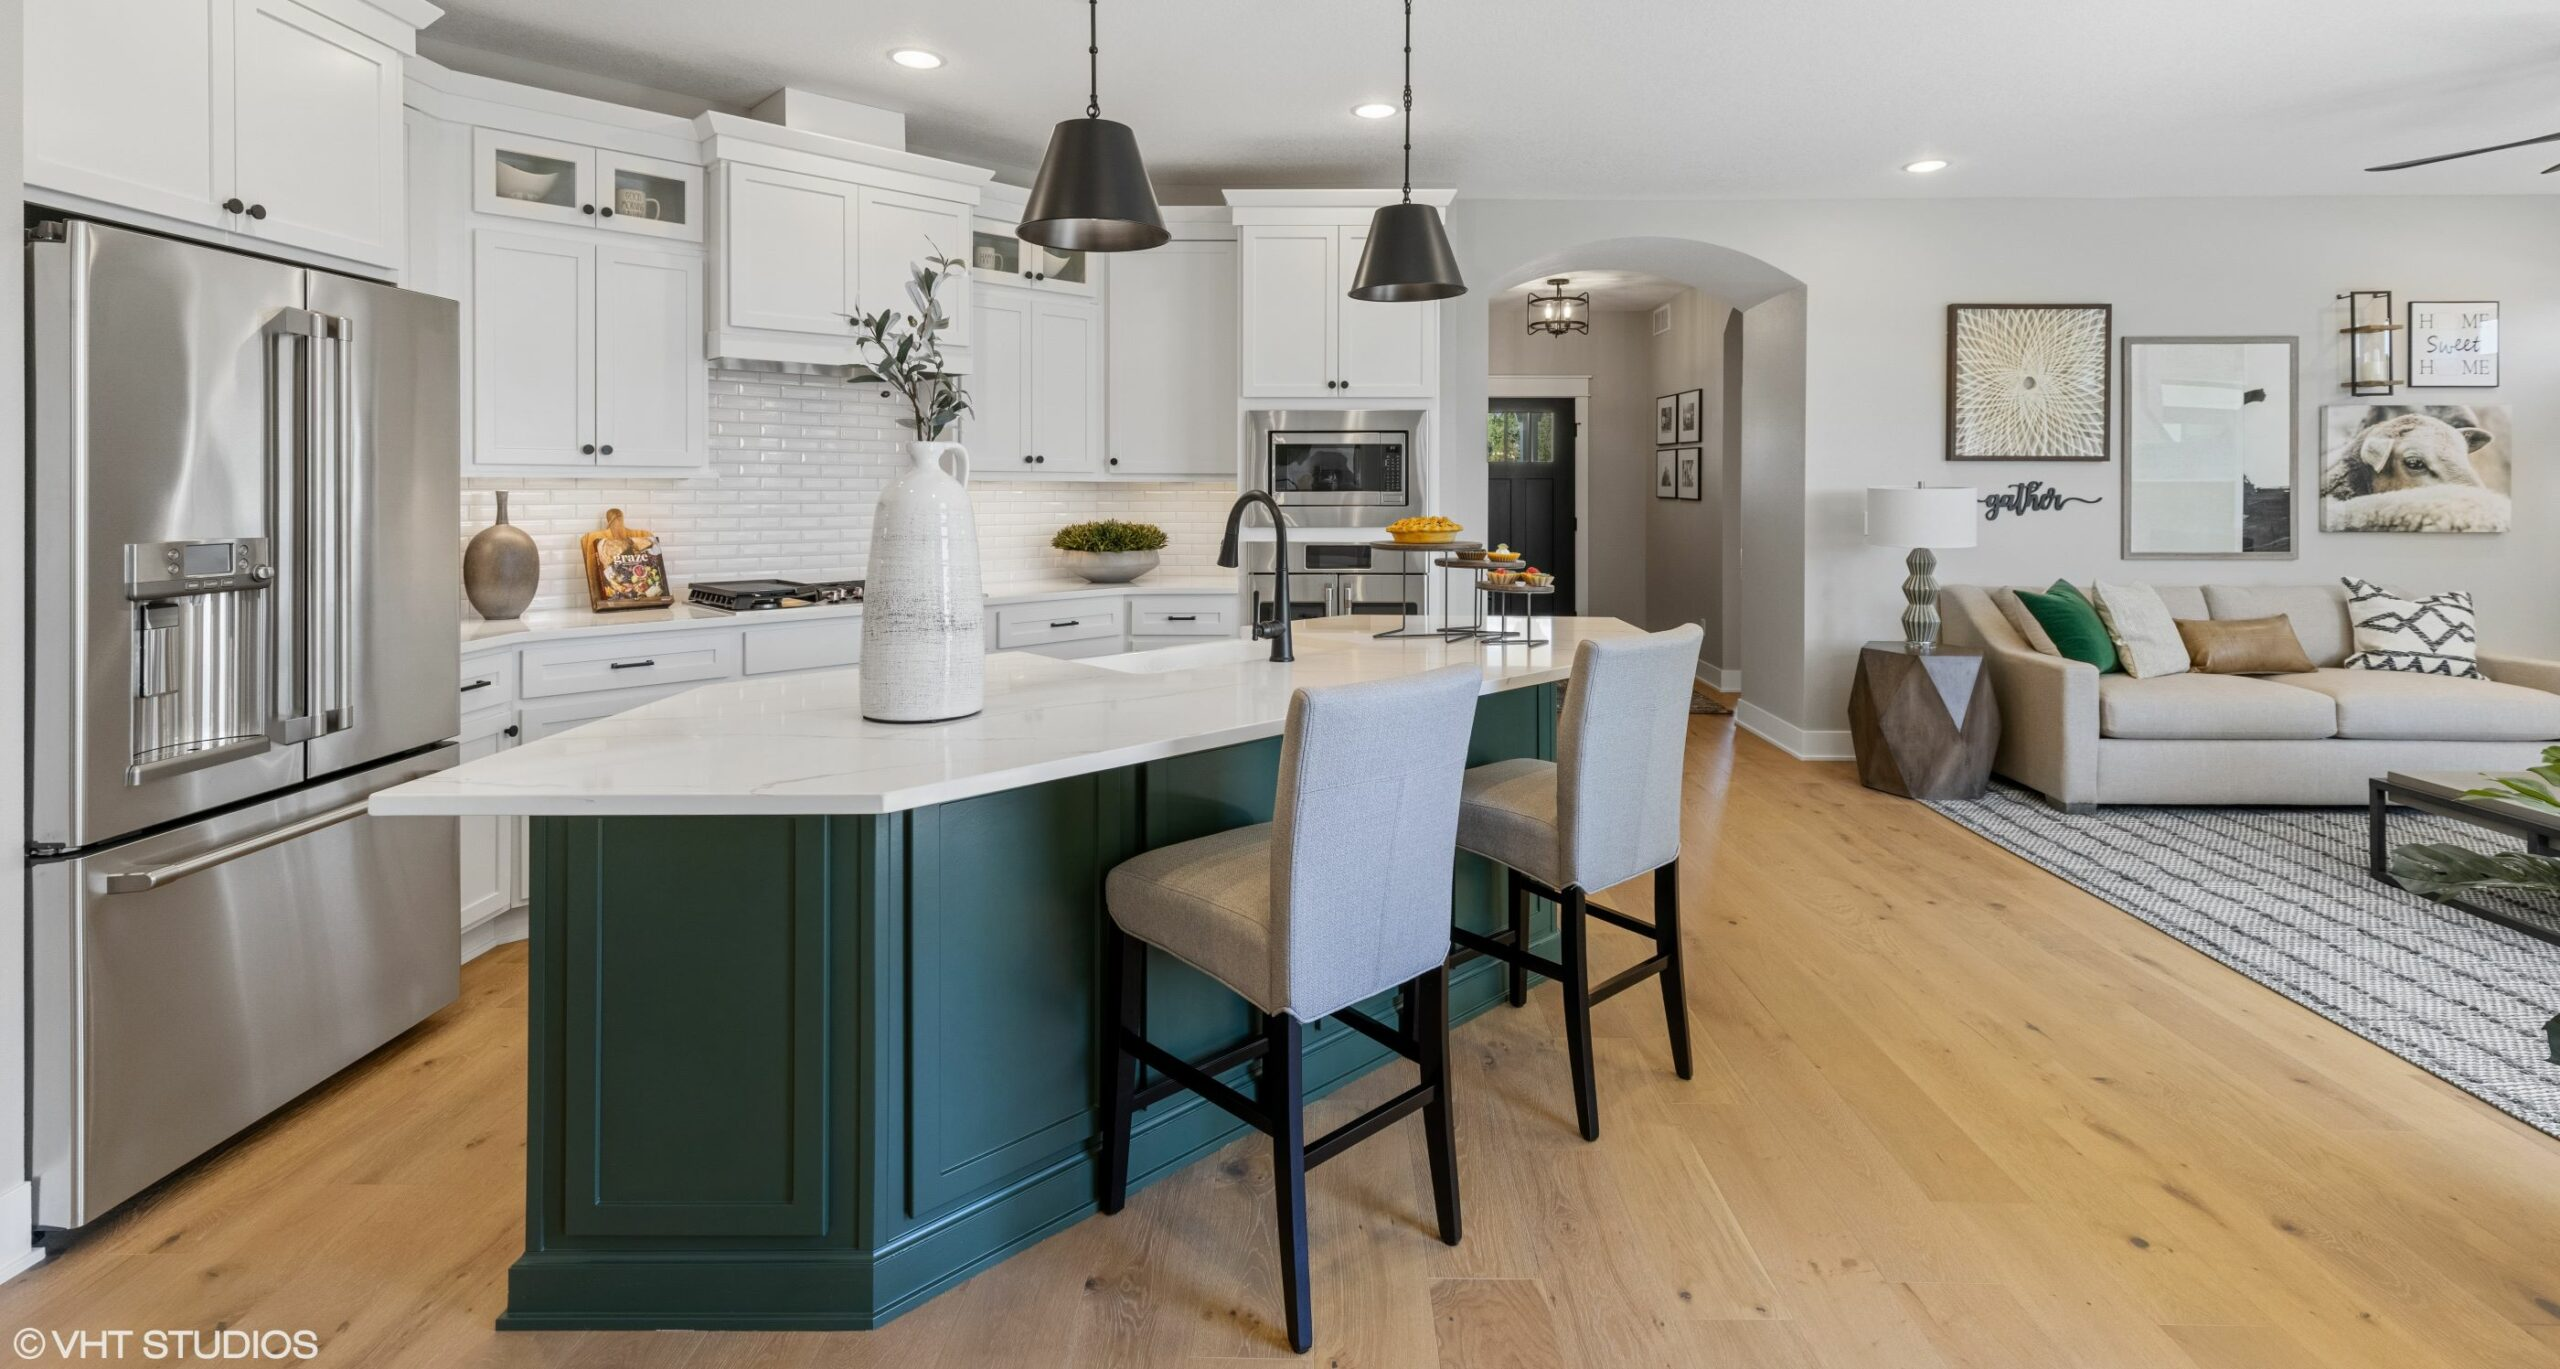 Bright open floor plan connects kitchen to great room in modern farmhouse model home in Ames, IA.